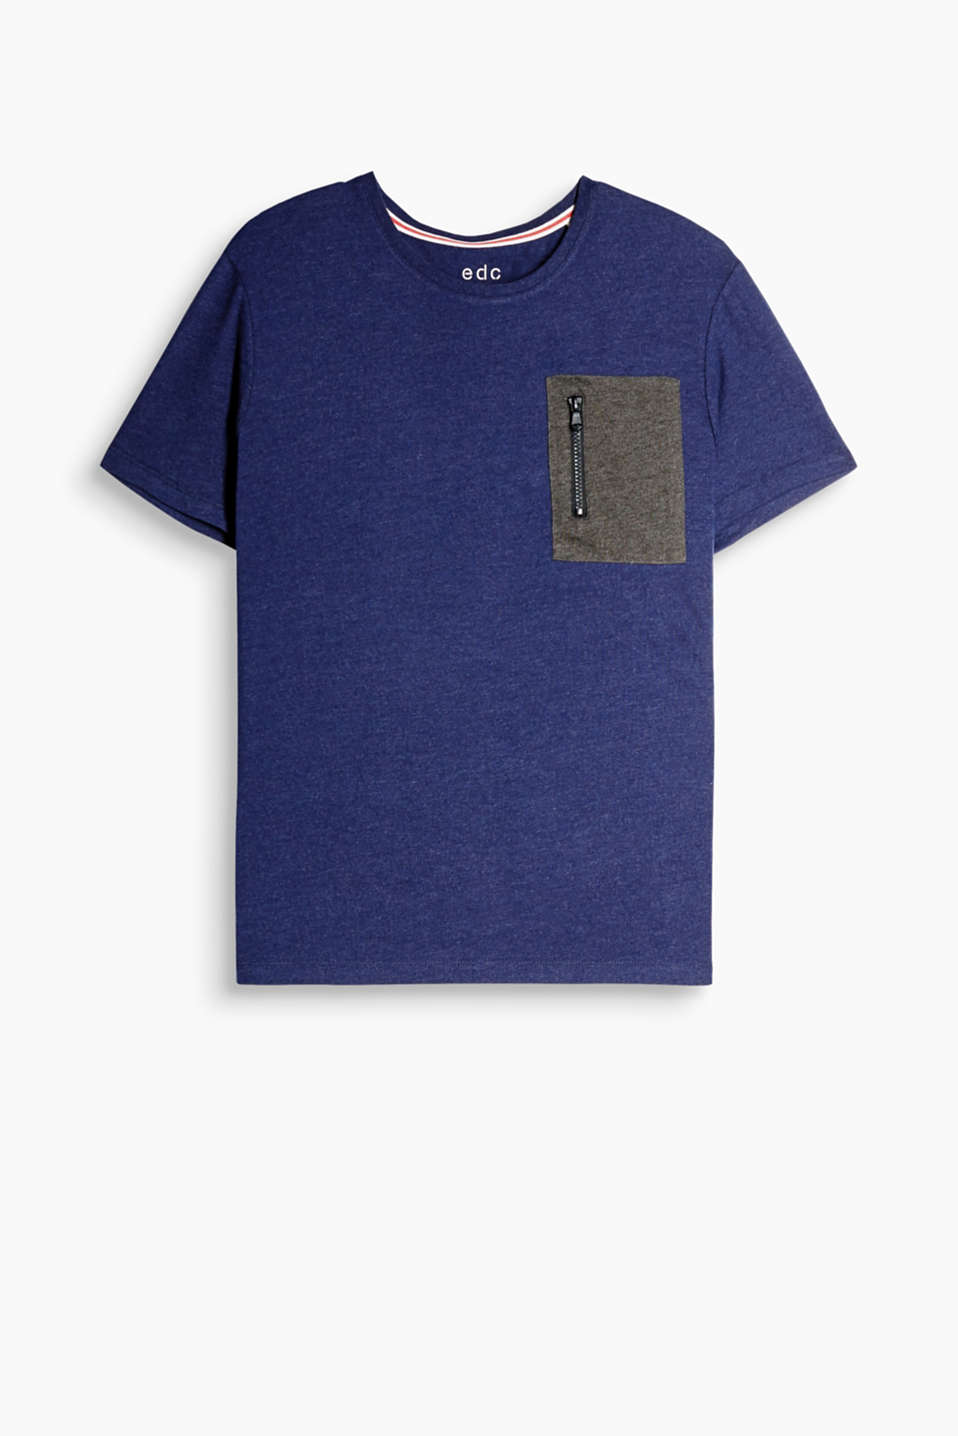 T-shirt made of melange cotton-jersey with a worn zipped breast pocket and a ribbed round neckline